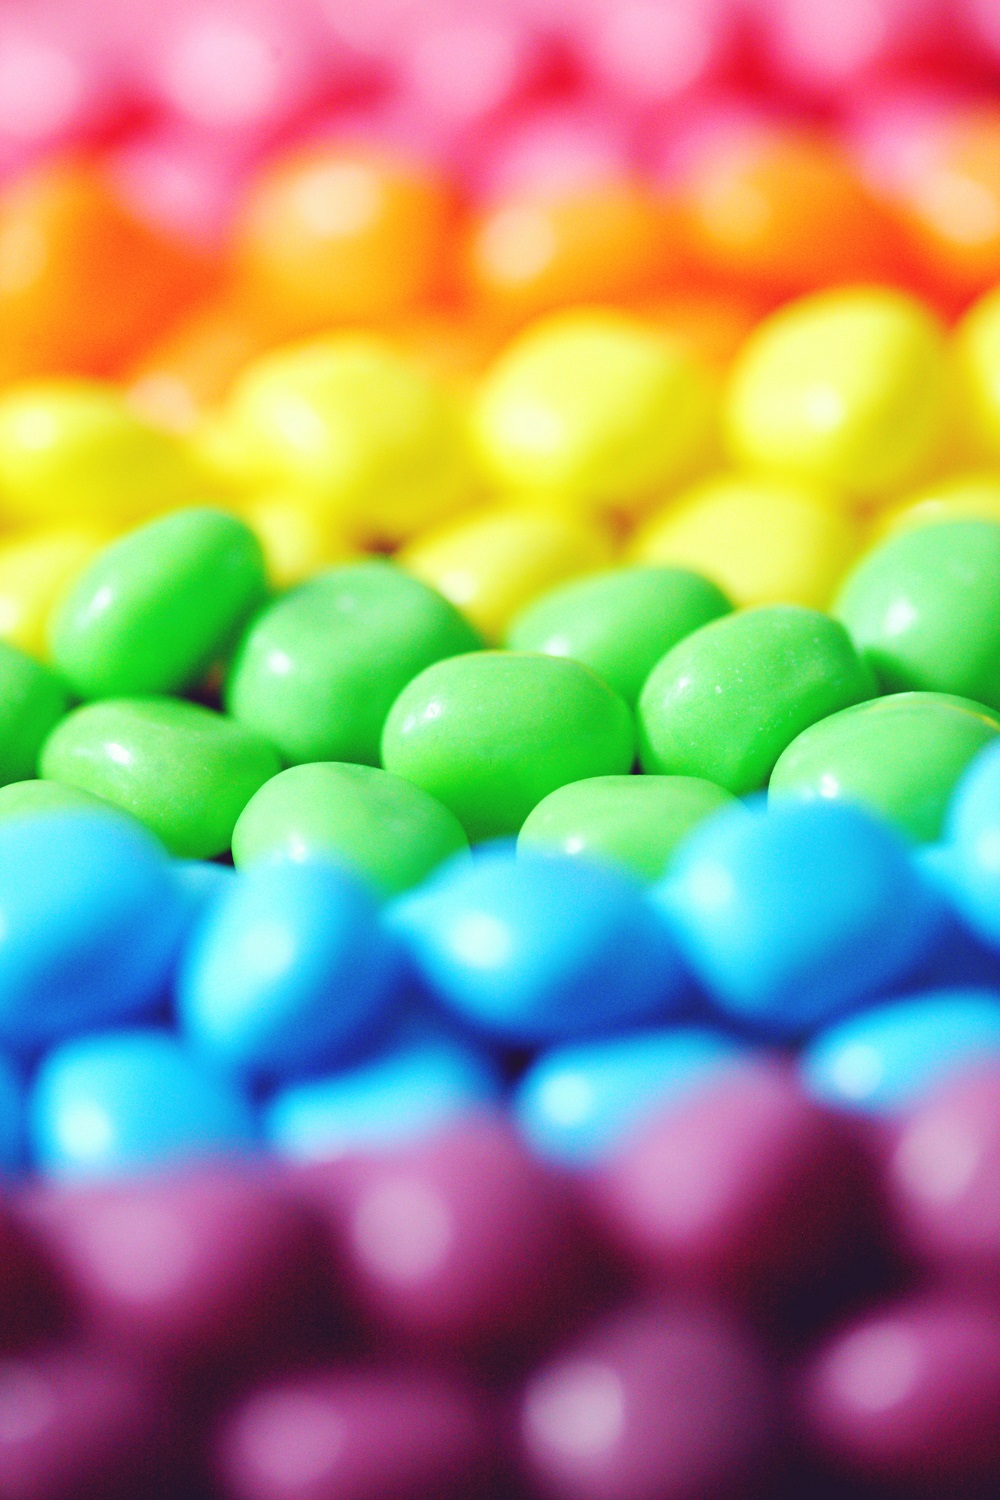 A display of skittle sweets